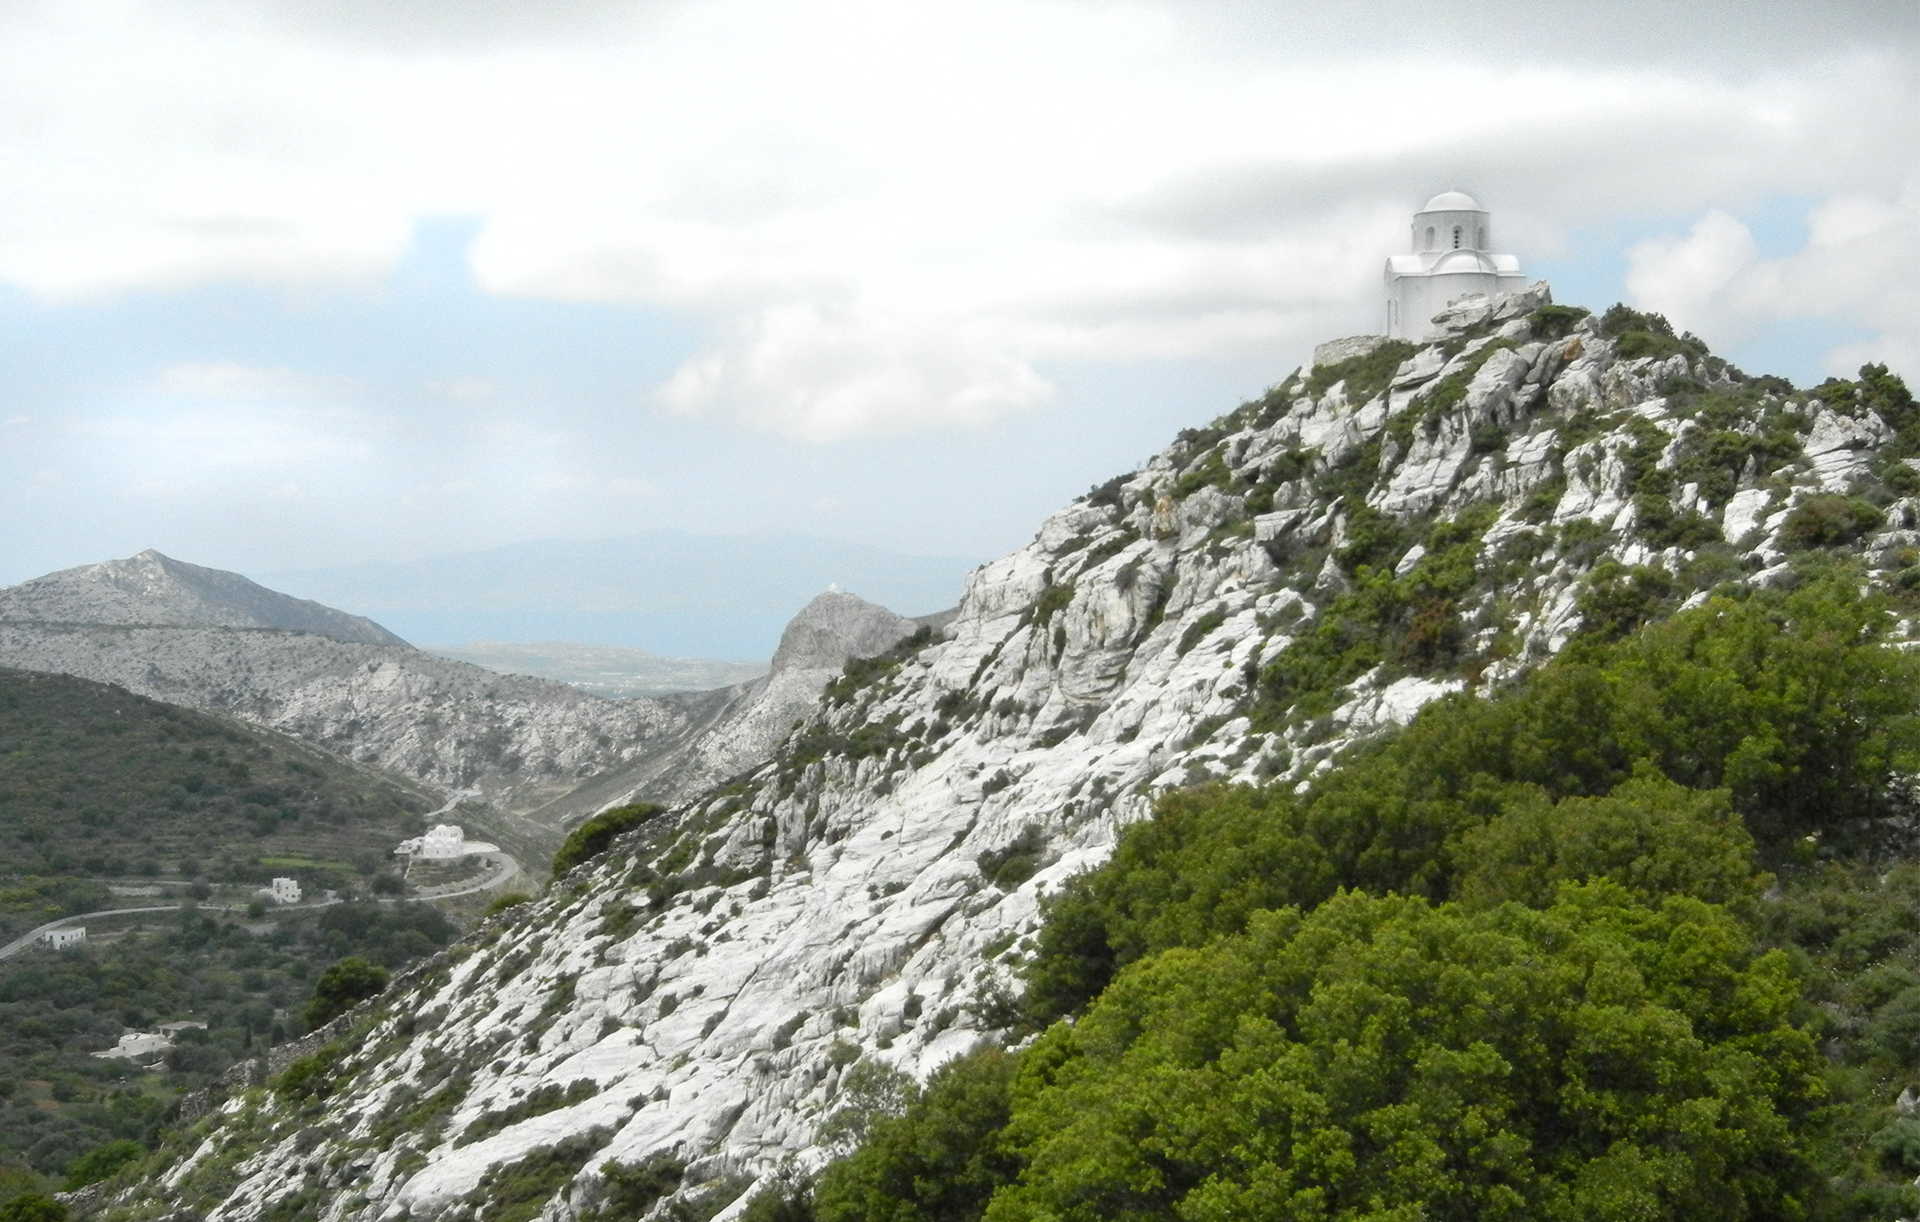 Mountains and valleys of Naxos Island. Each mountain topped with a traditional Greek Orthodox church